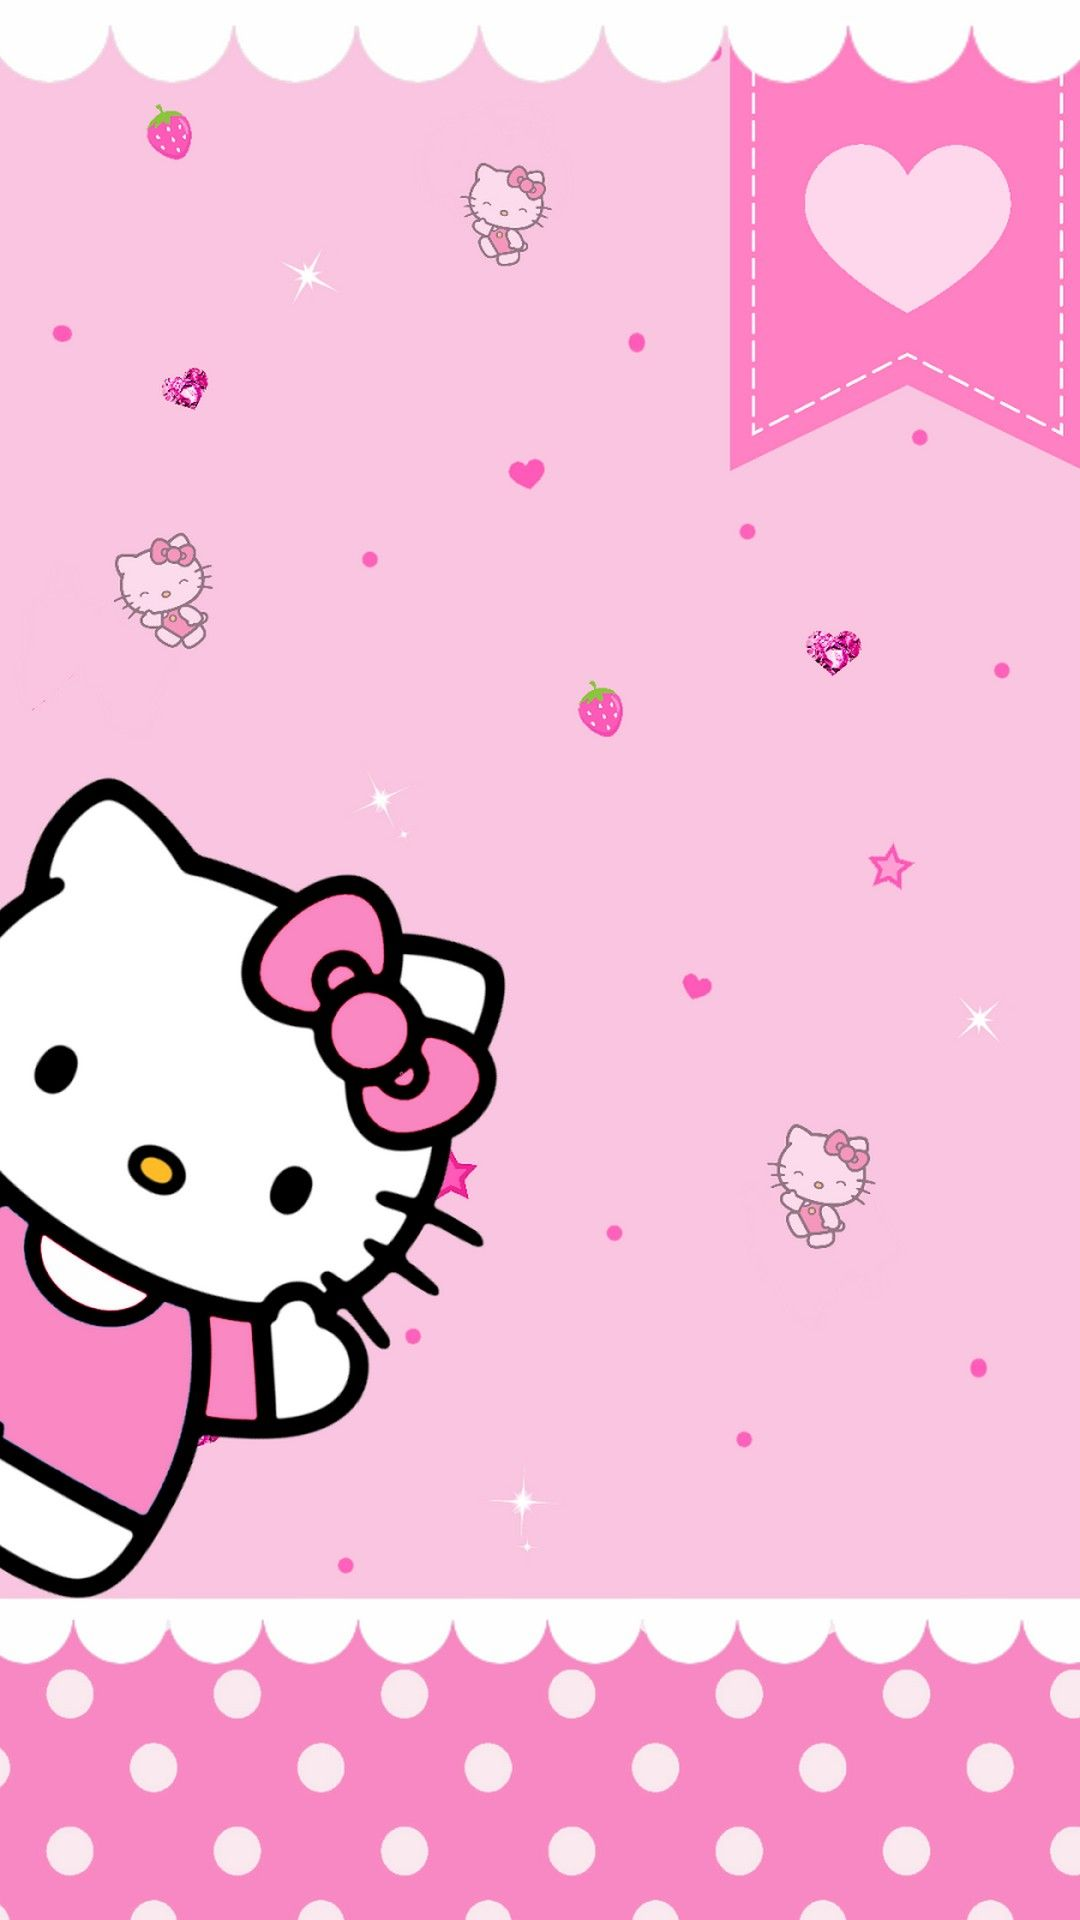 Hello Kitty Pictures Hd Wallpaper For Iphone Best Wallpaper Hd Hello Kitty Backgrounds Hello Kitty Pictures Hello Kitty Wallpaper Hd